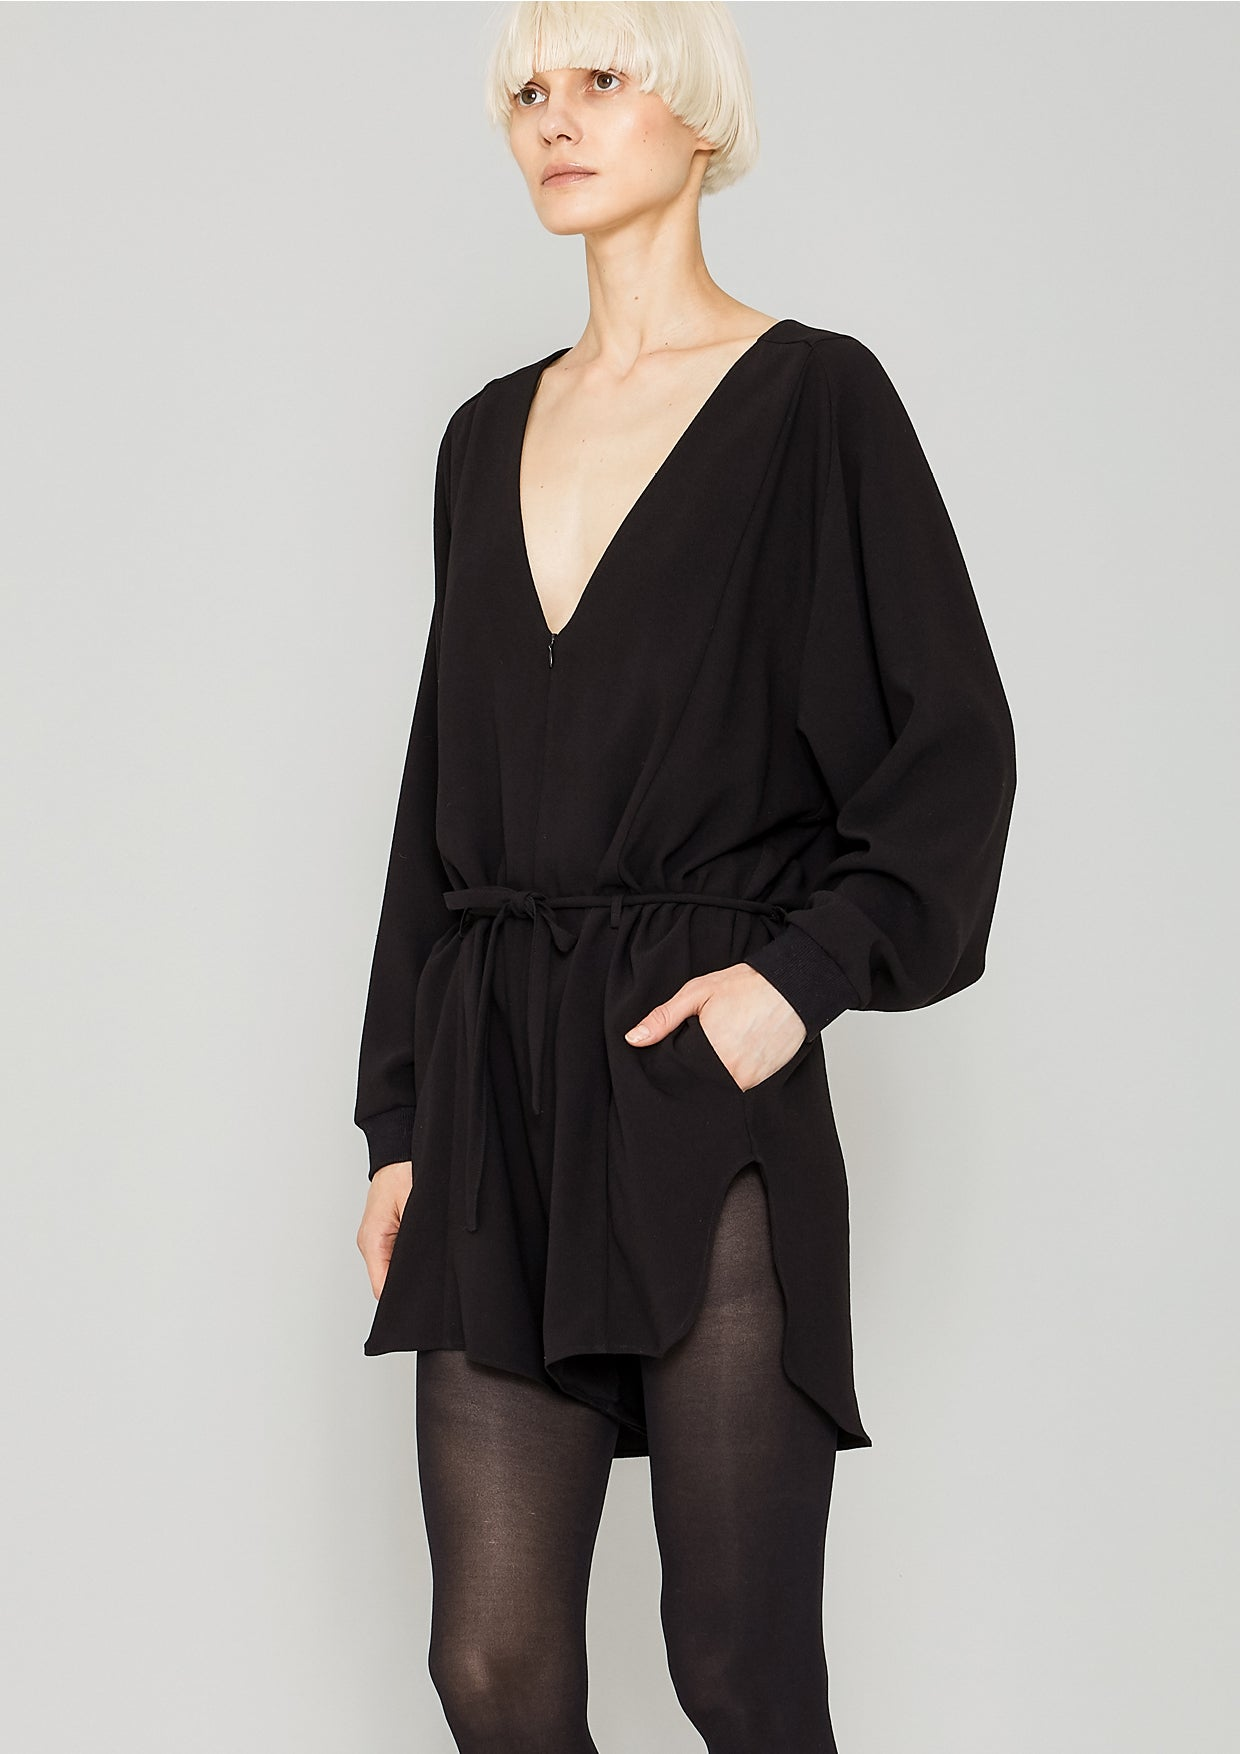 feb09a27ad JUMPSUIT SHORT OVERSIZED - HEAVY DRAPING black